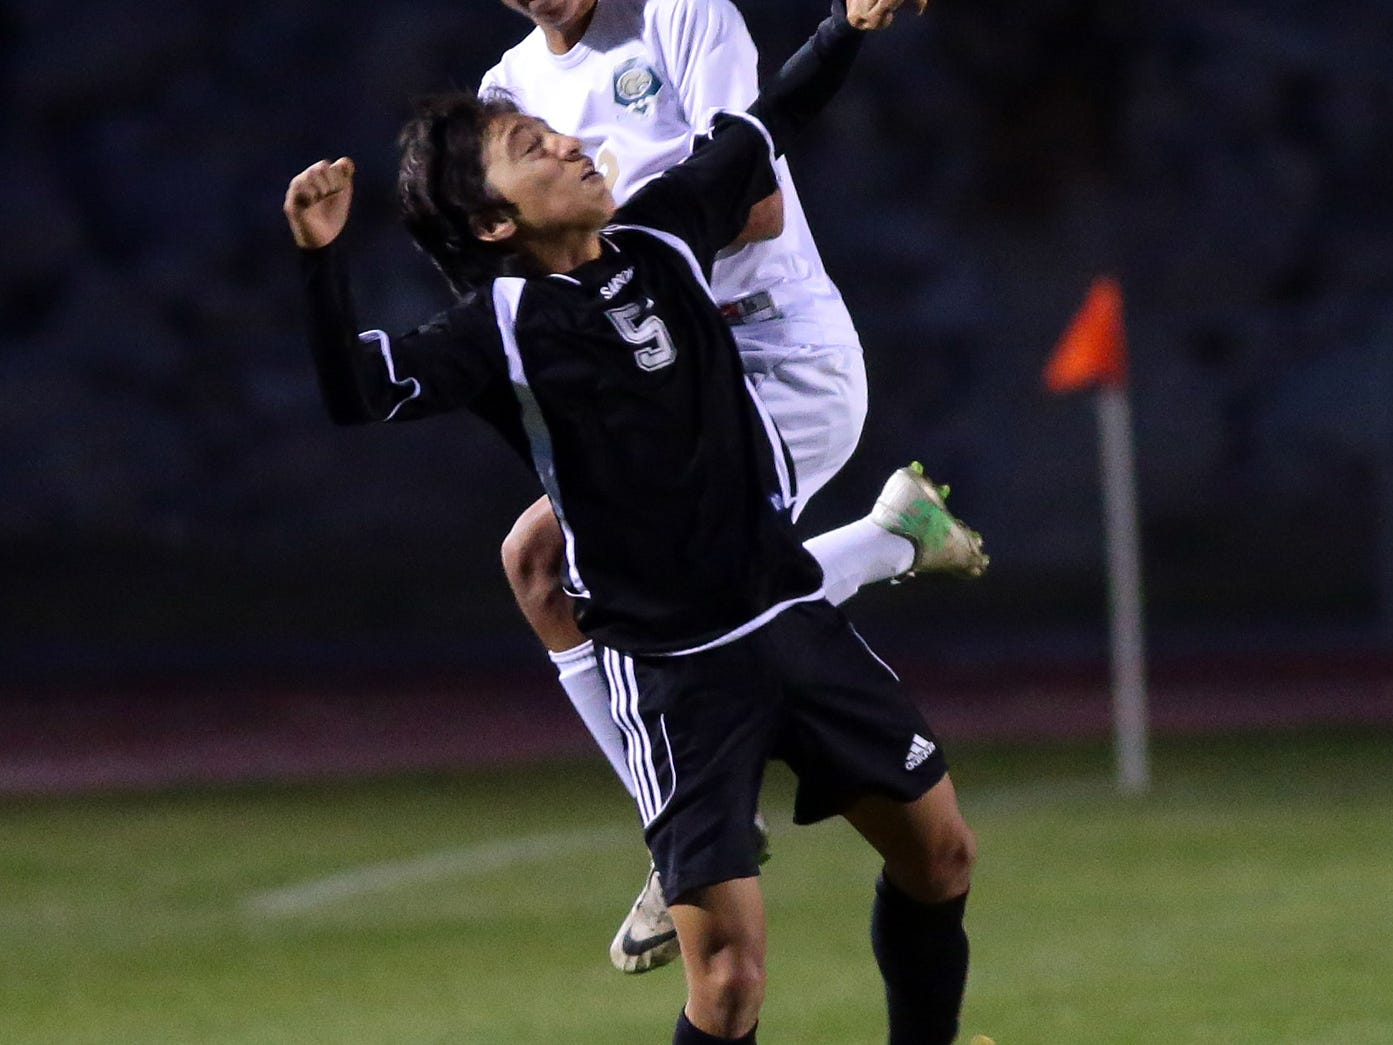 Desert Hot Springs' Pablo Minero (2, white) wins a header over an opponent from Yucca Valley in the first half of a boys' soccer game Tuesday in Desert Hot Springs. Crystal Chatham/ The Desert Sun